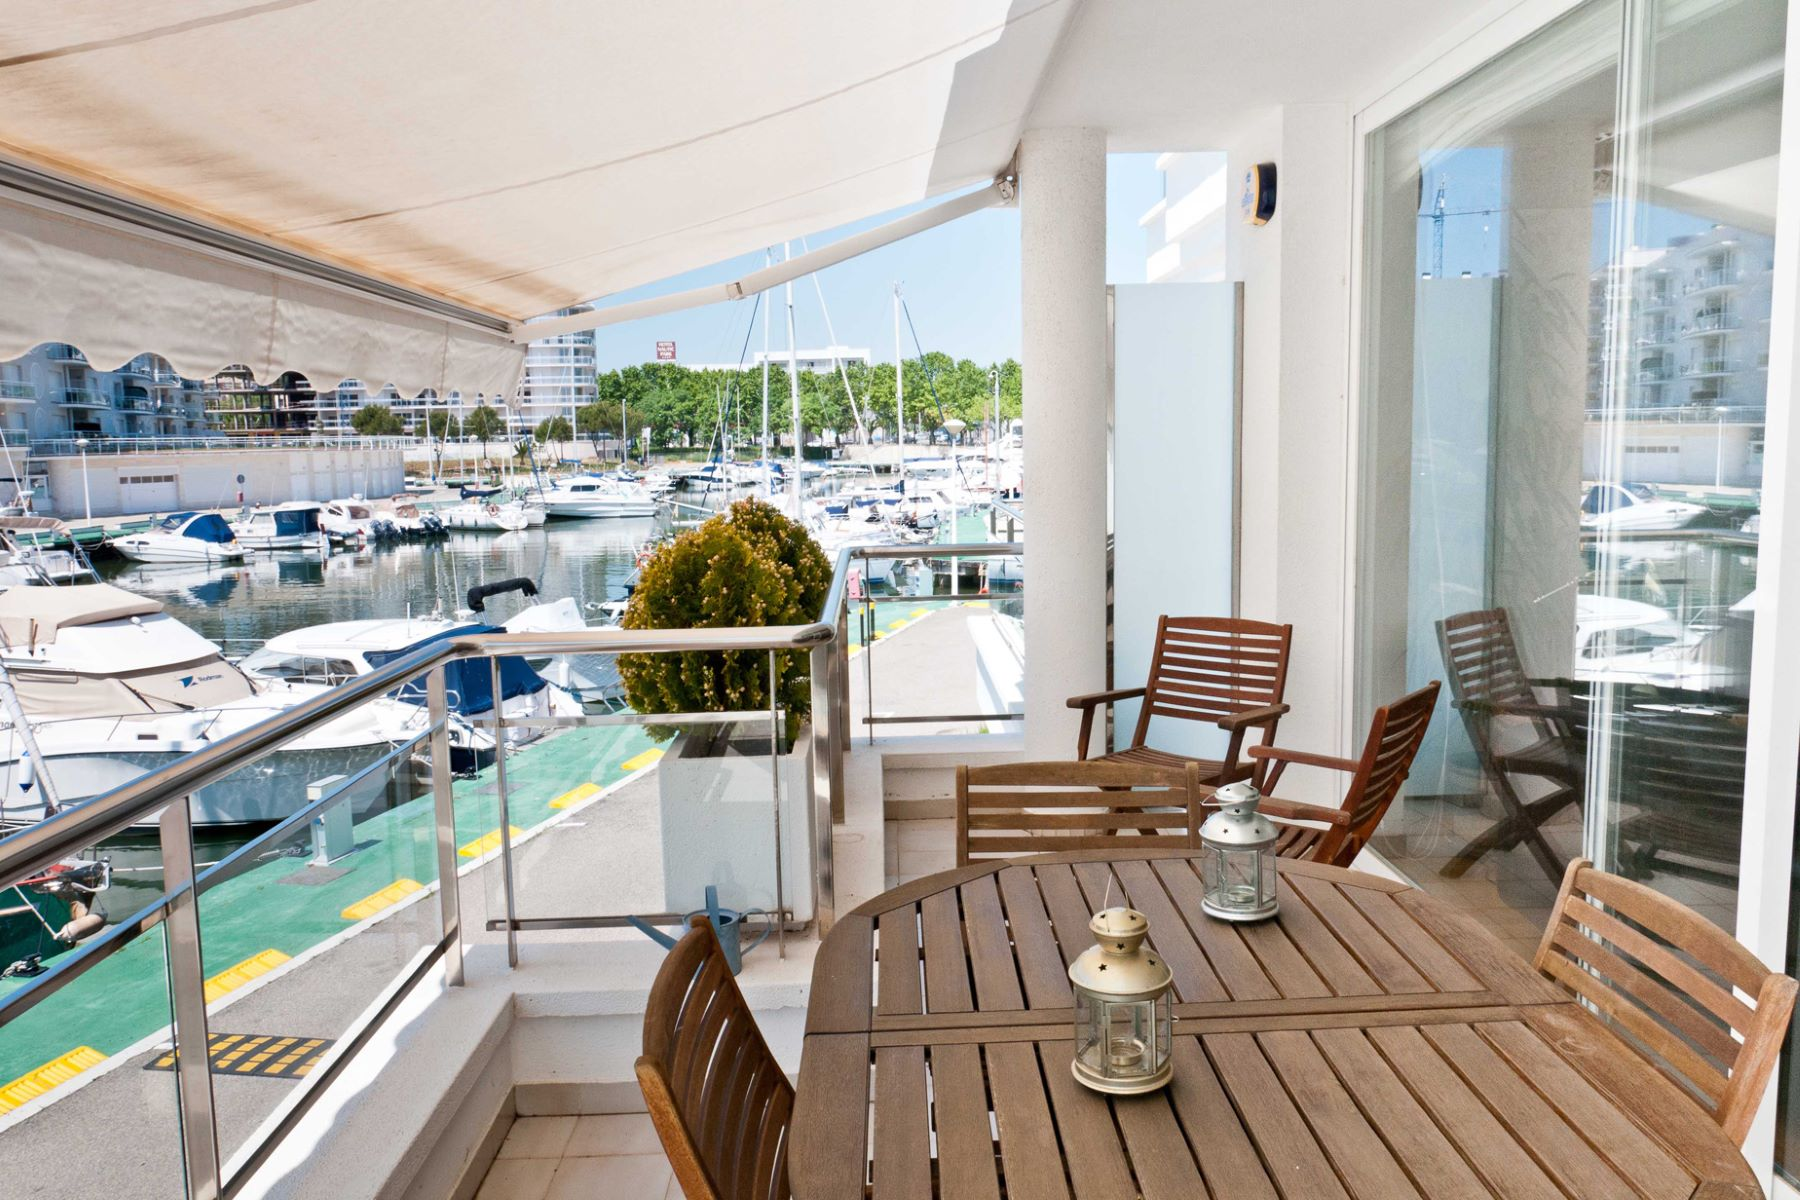 Single Family Home for Sale at Terraced house on private island in Port d'Aro Playa De Aro, Costa Brava, 17250 Spain